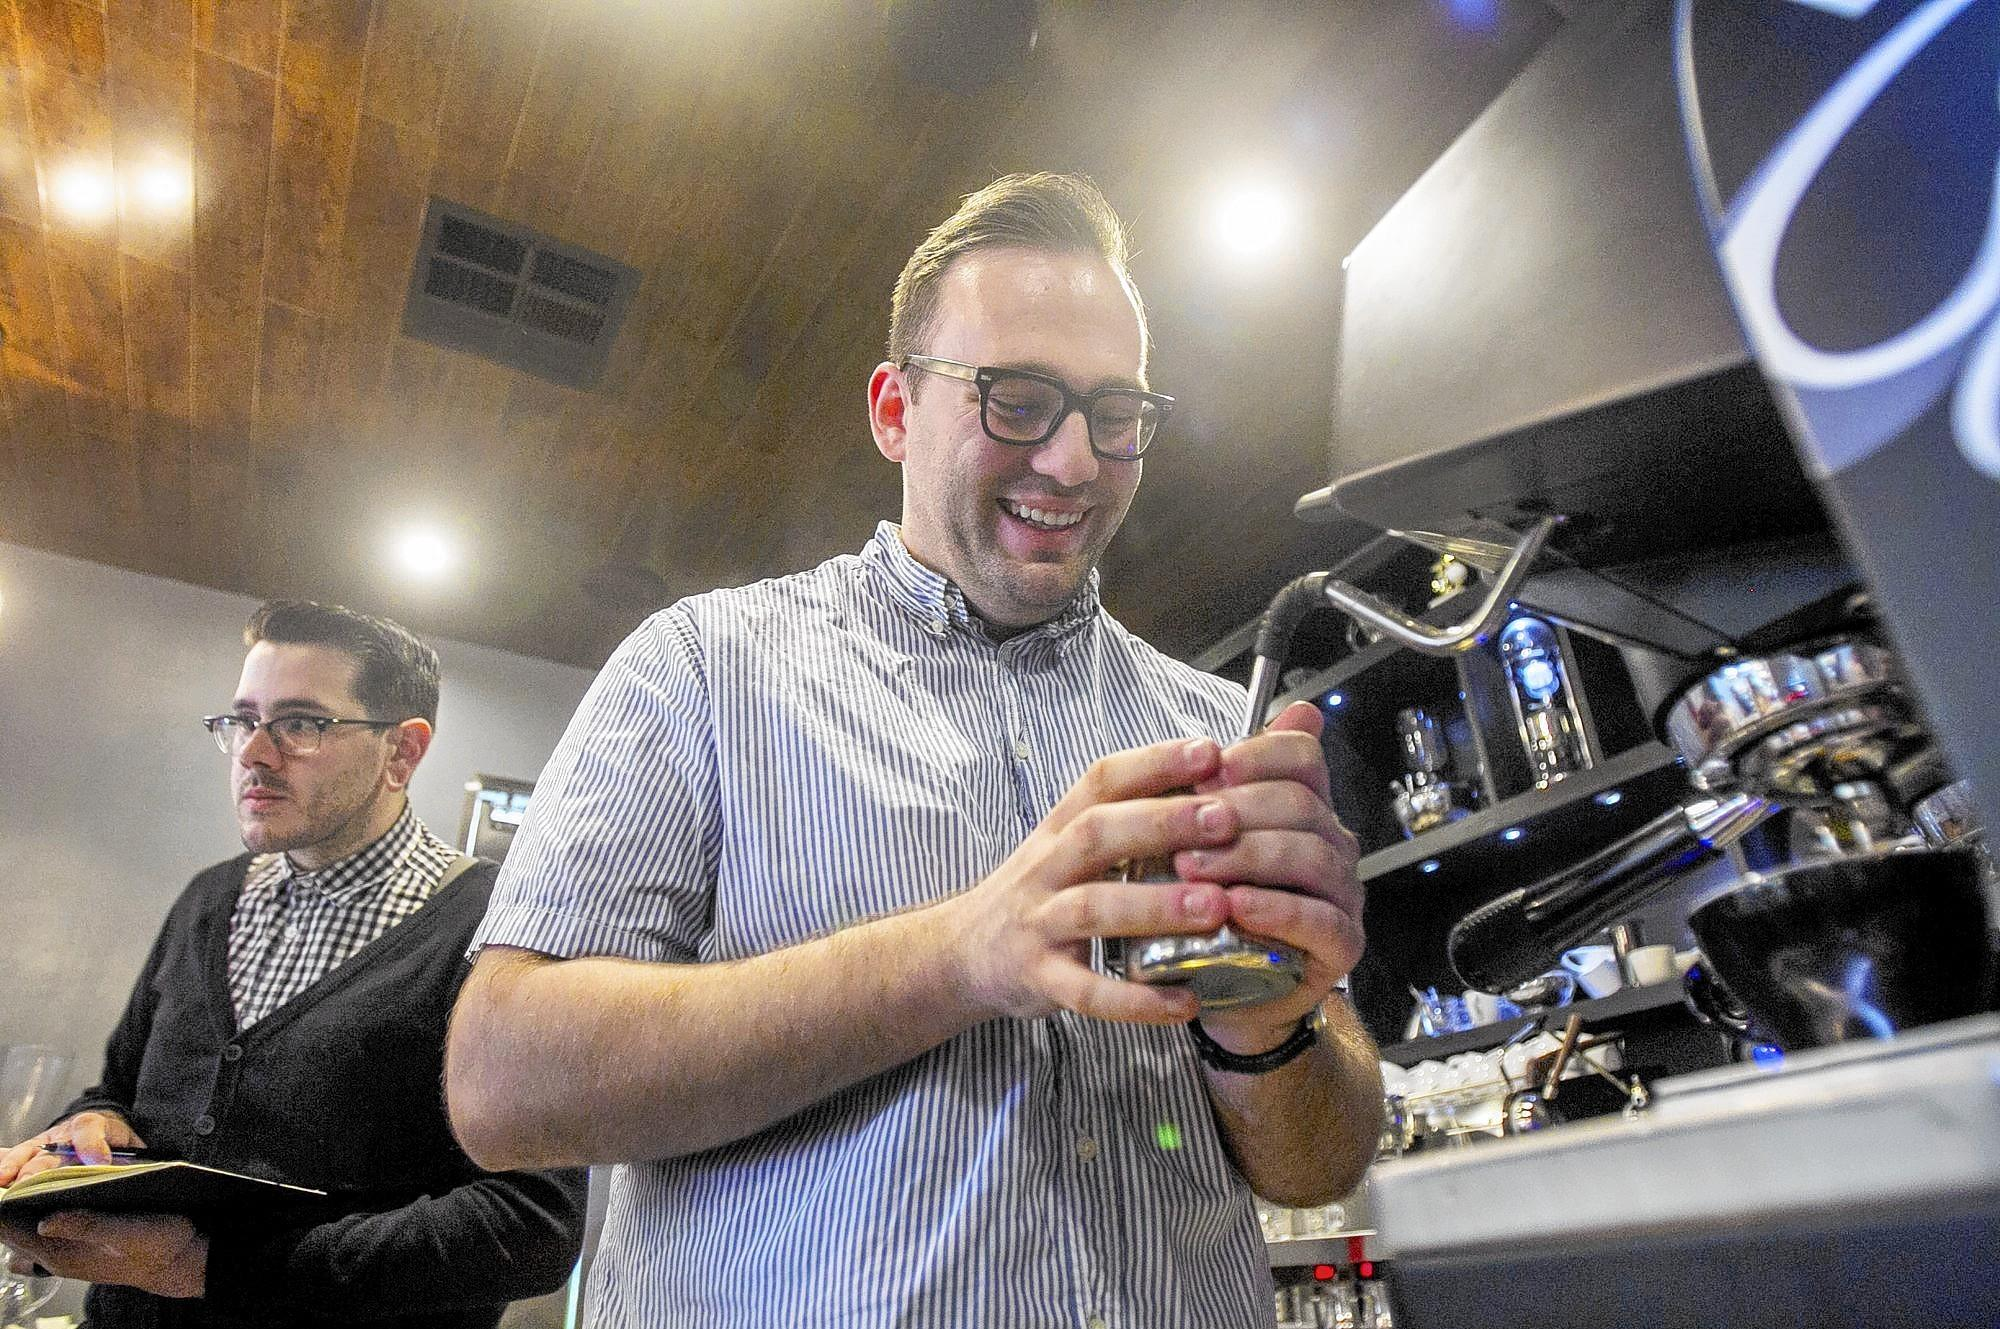 Truman Severson, left, and Andrew Ogden, baristas at Portola Coffee Lab, practice Wednesday at the shop for a competition this weekend in Los Angeles.